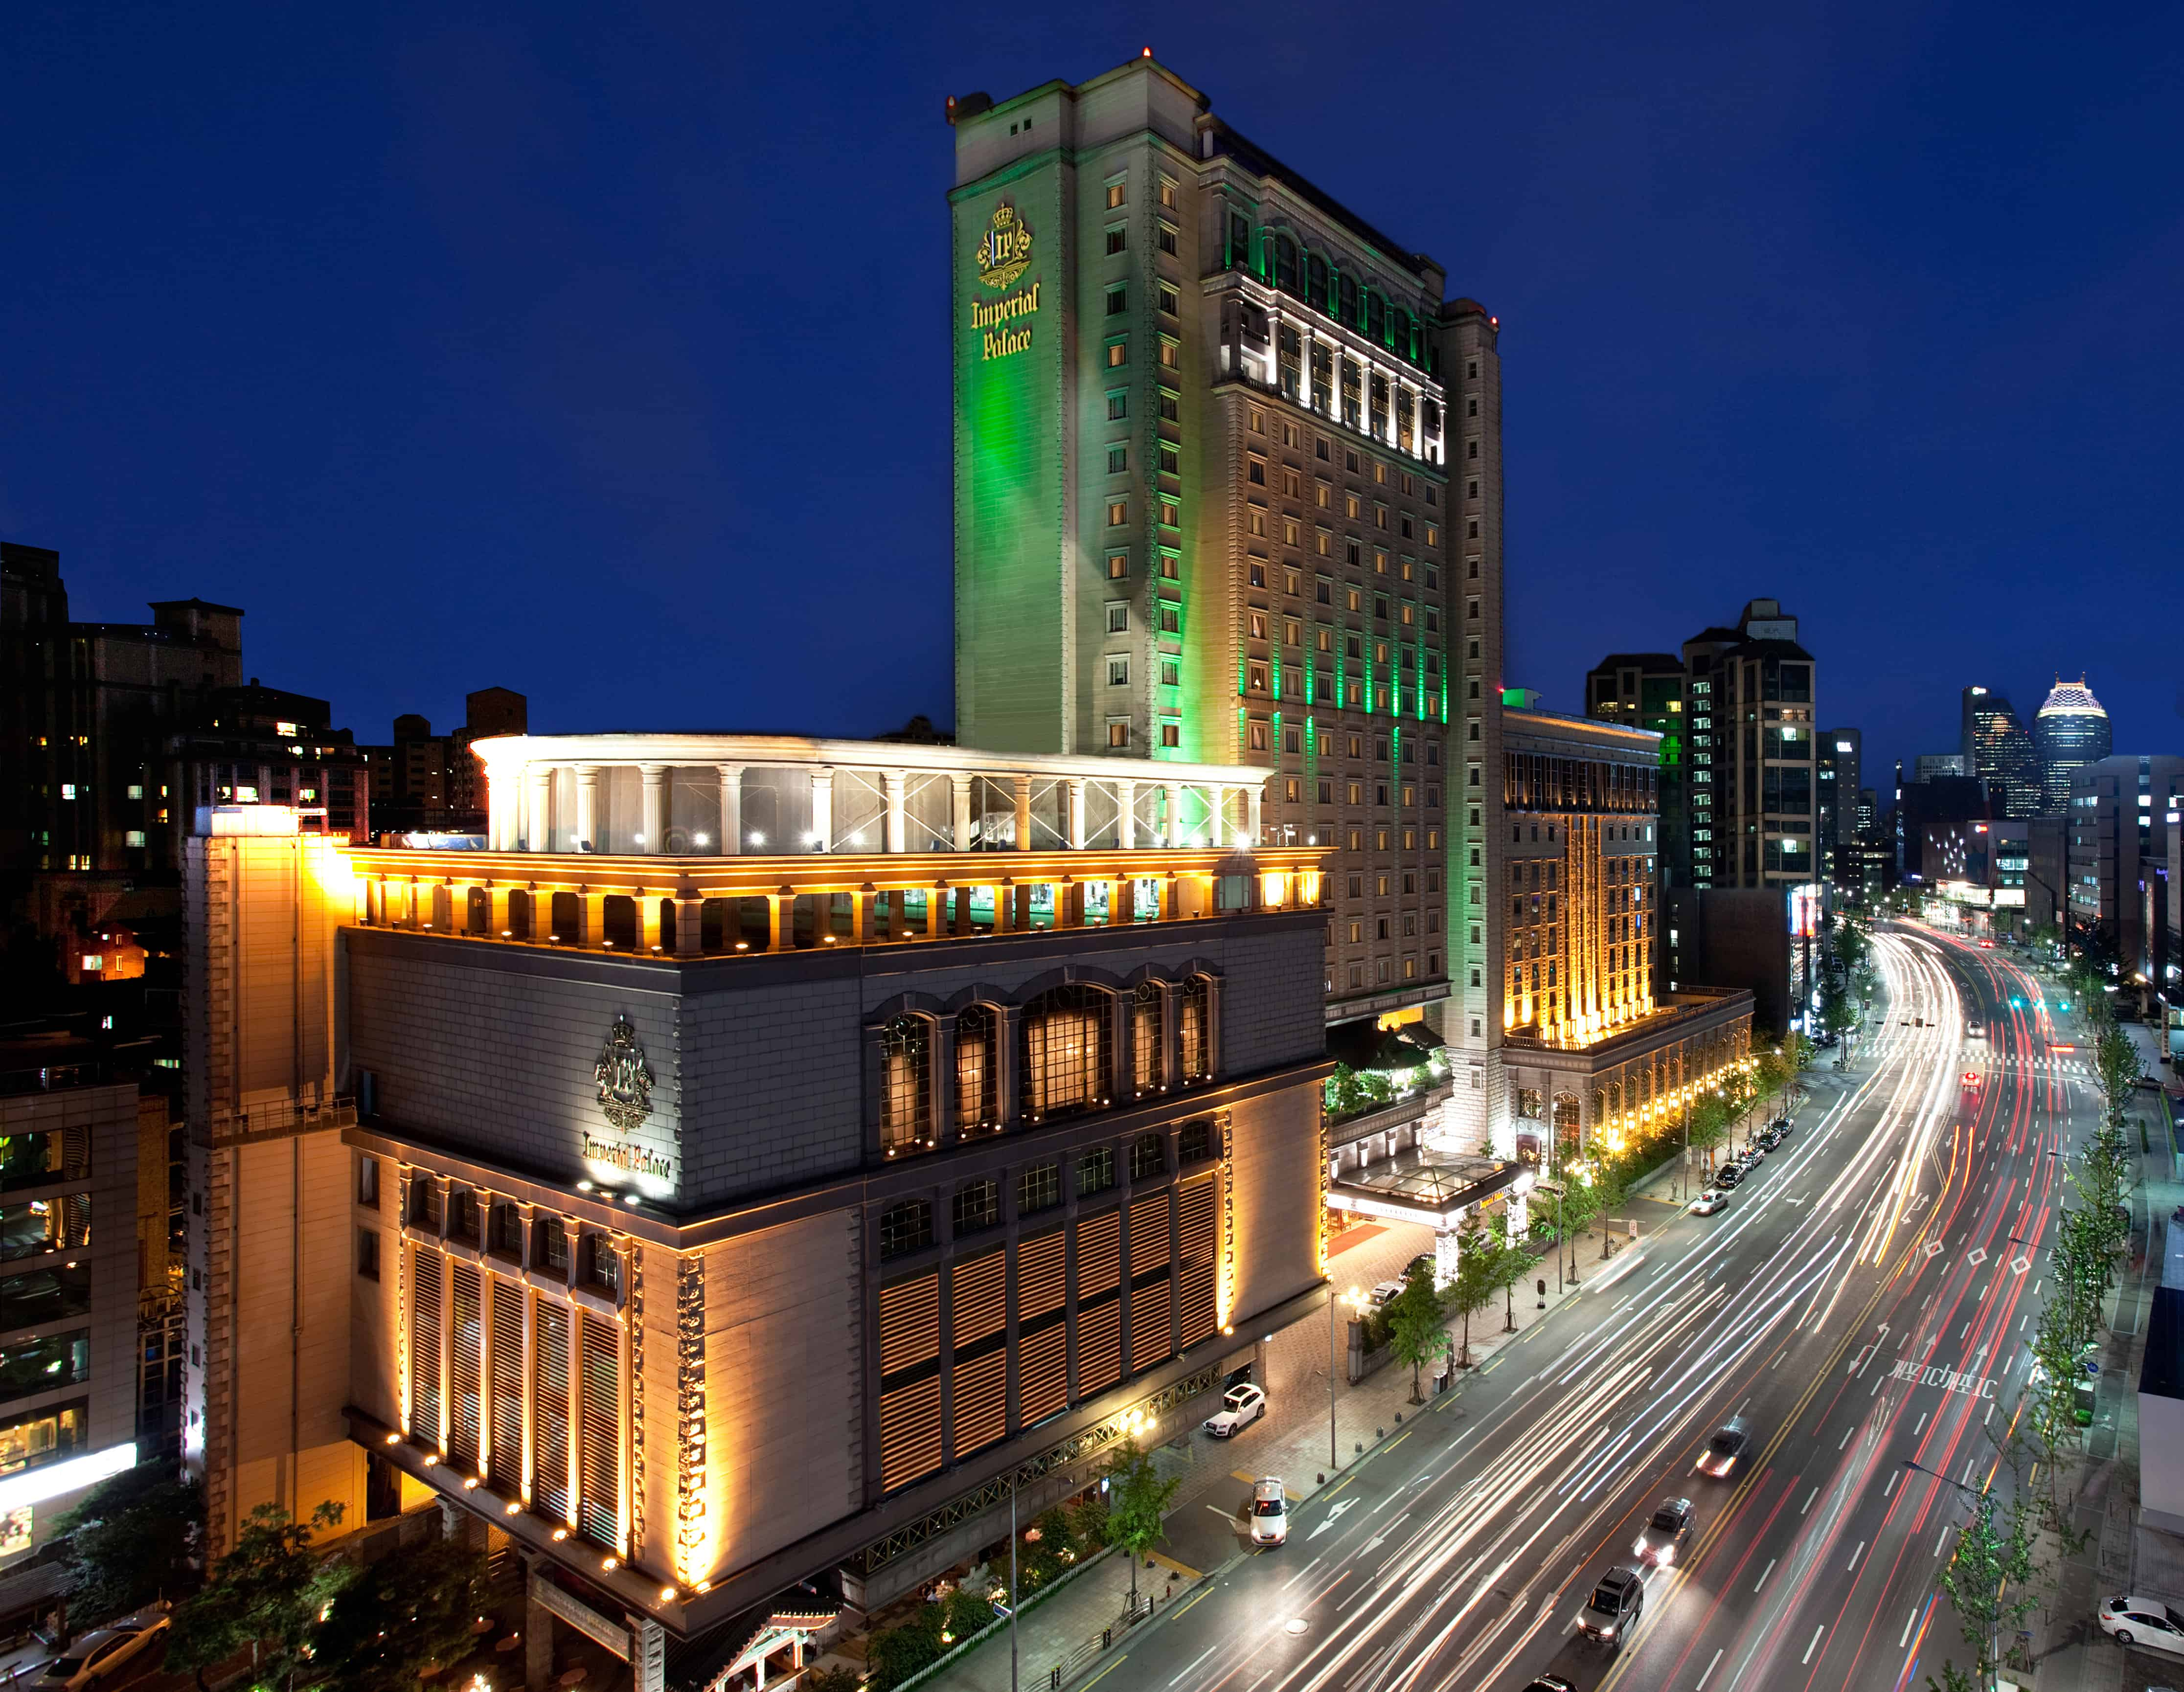 image-imperial-palace-seoul-hotel-night-view